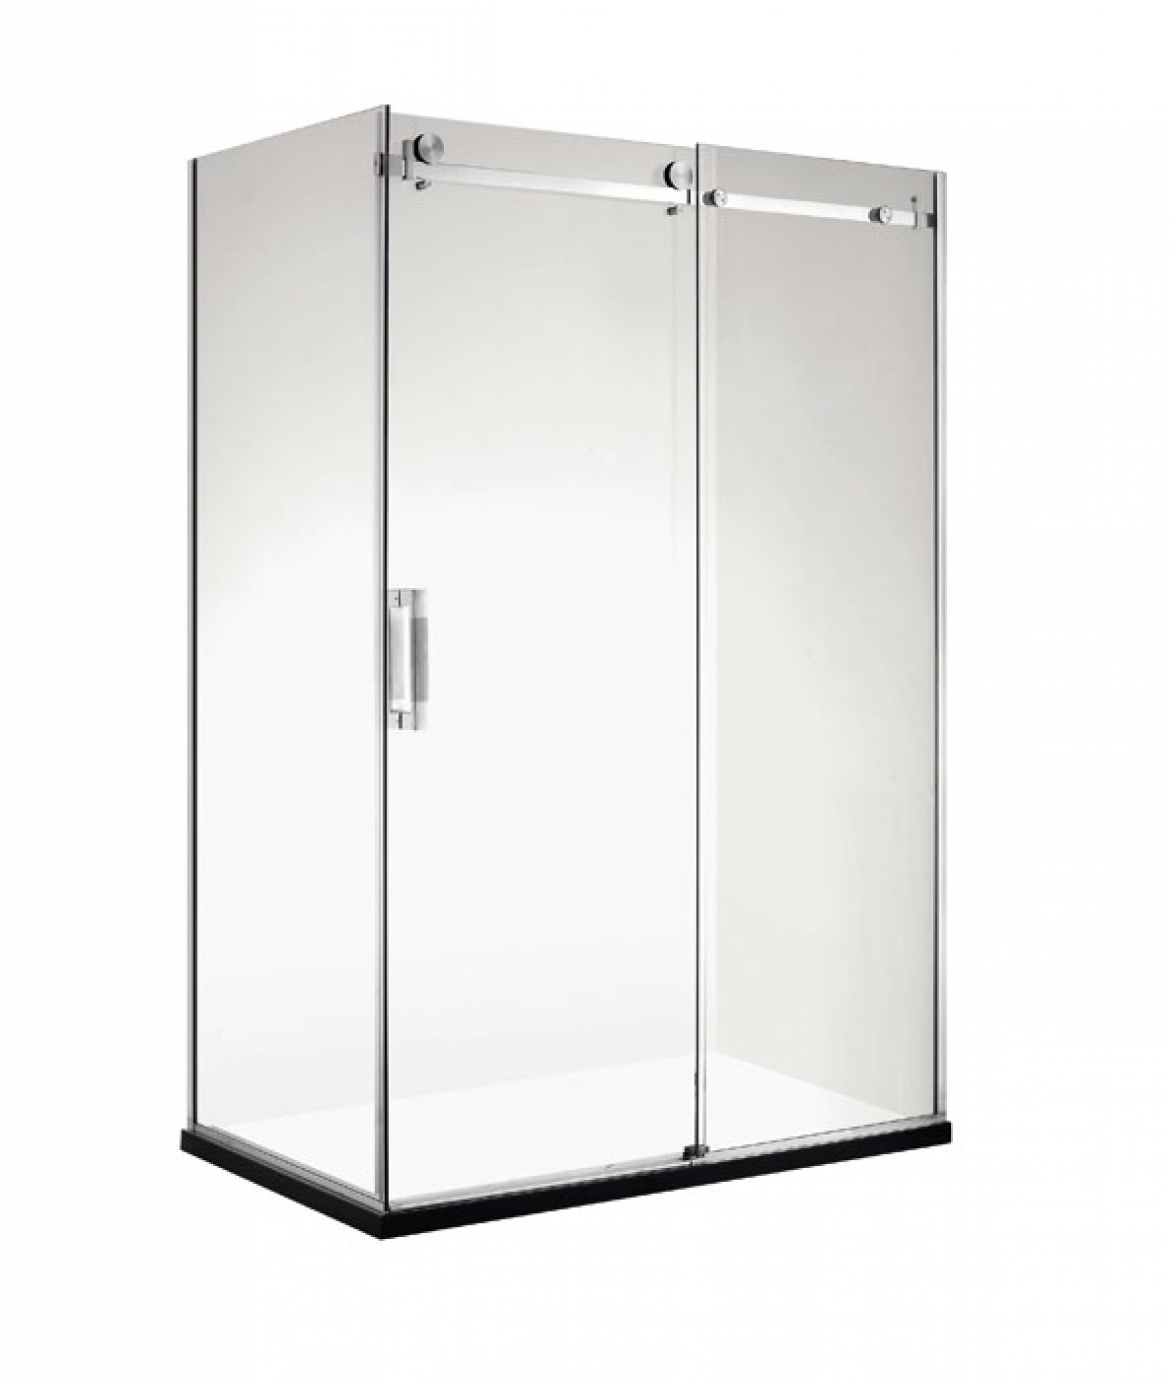 Frameless Corner sliding door Shower screen [1200 x 900 mm]